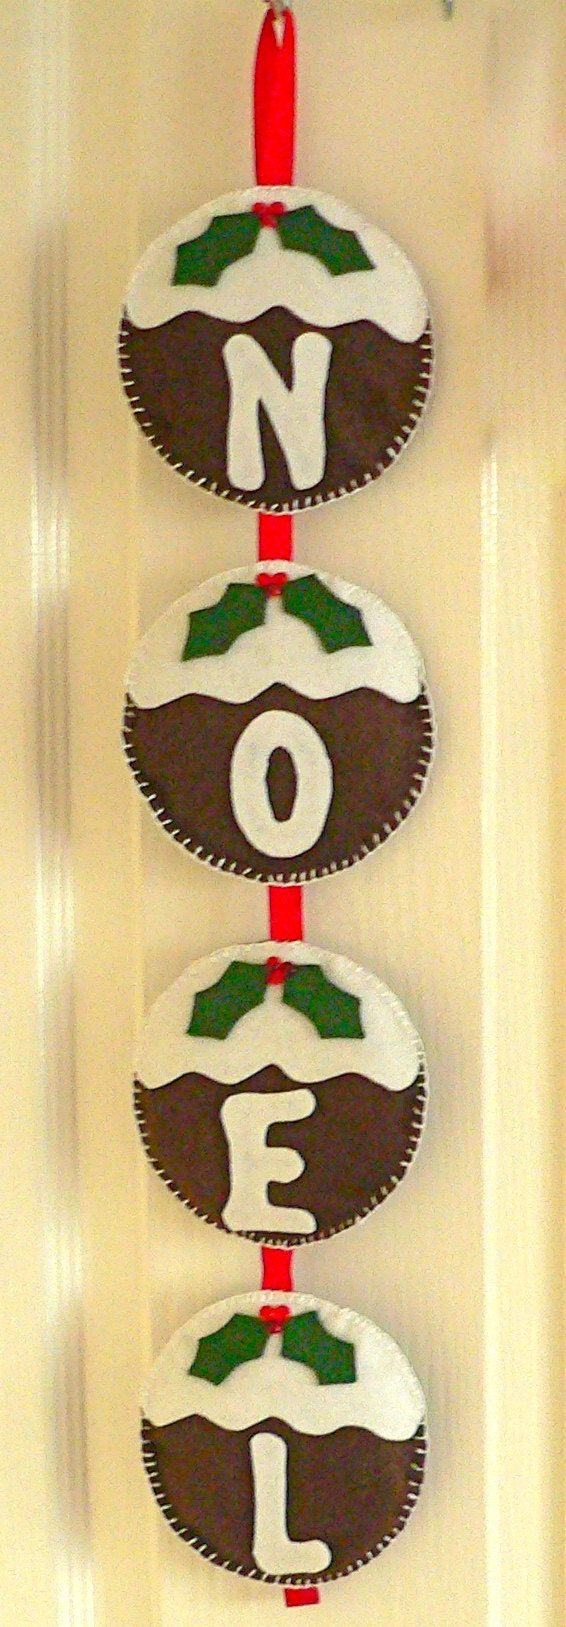 This gorgeous felt Christmas pudding NOEL decoration is hand stitched by me.  It is made with acrylic felt and is handstitched with love. It is